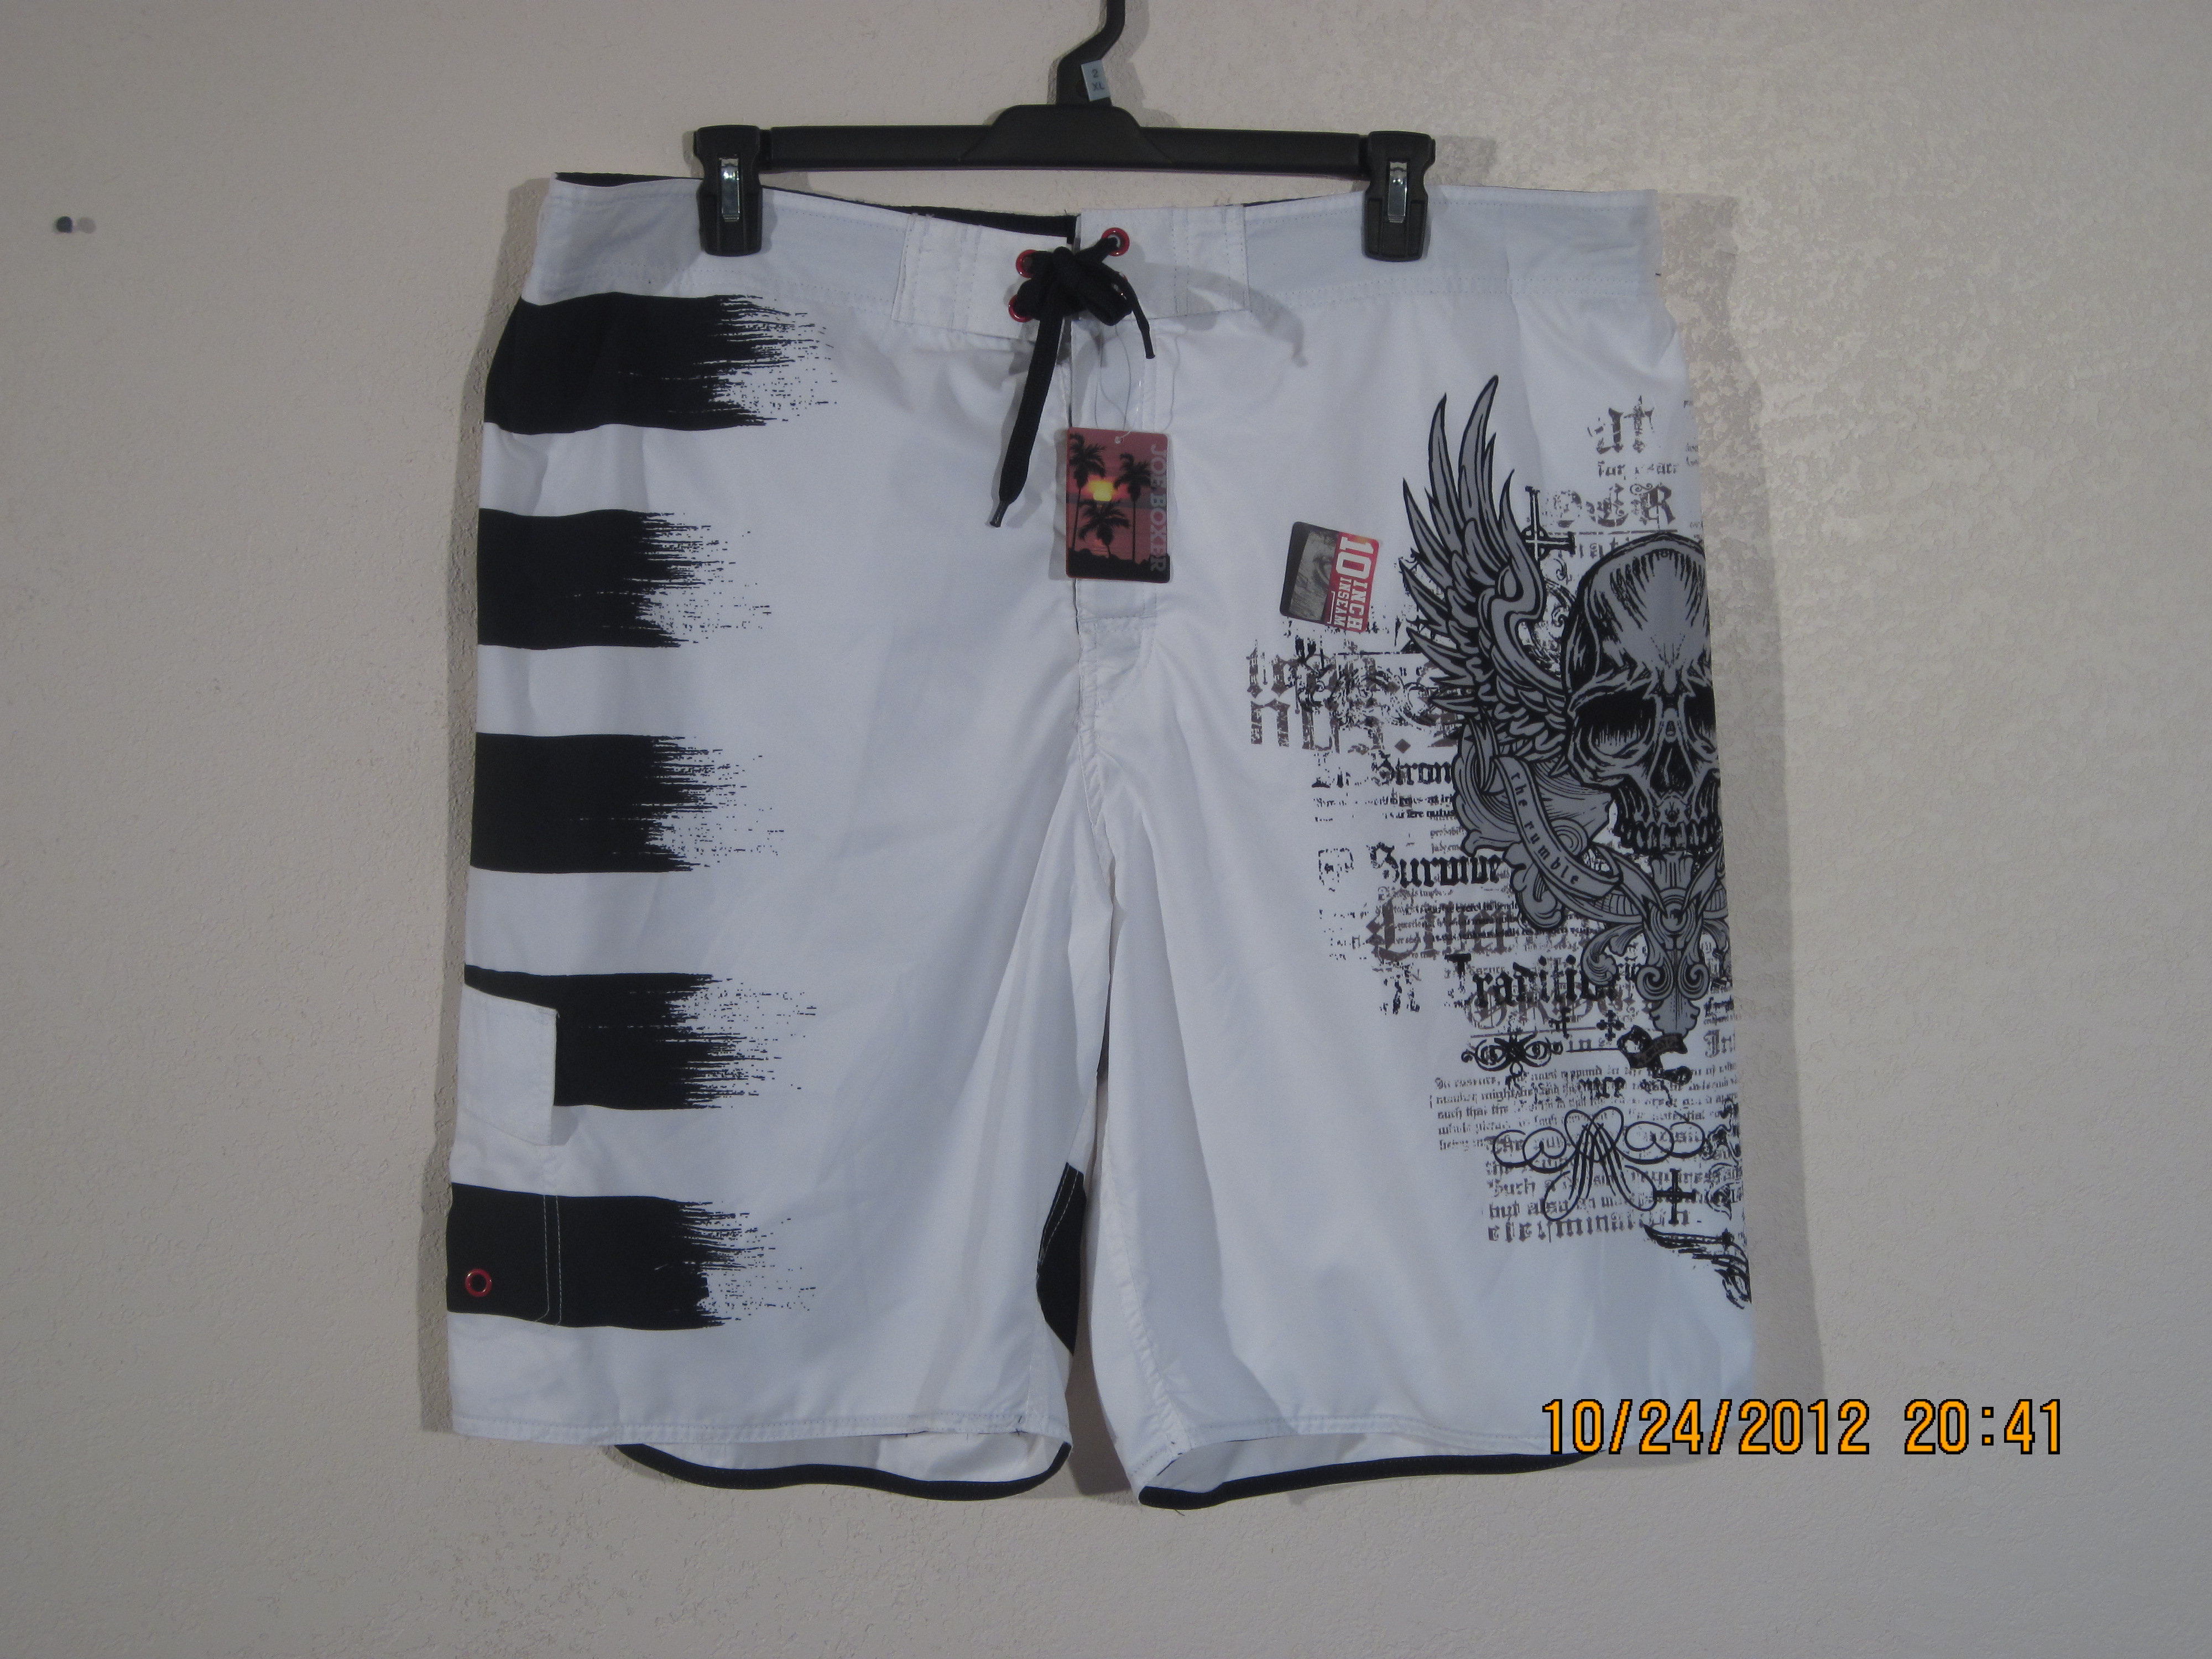 Joe Boxer SzXXL Swimwear shorts White,Black with skull